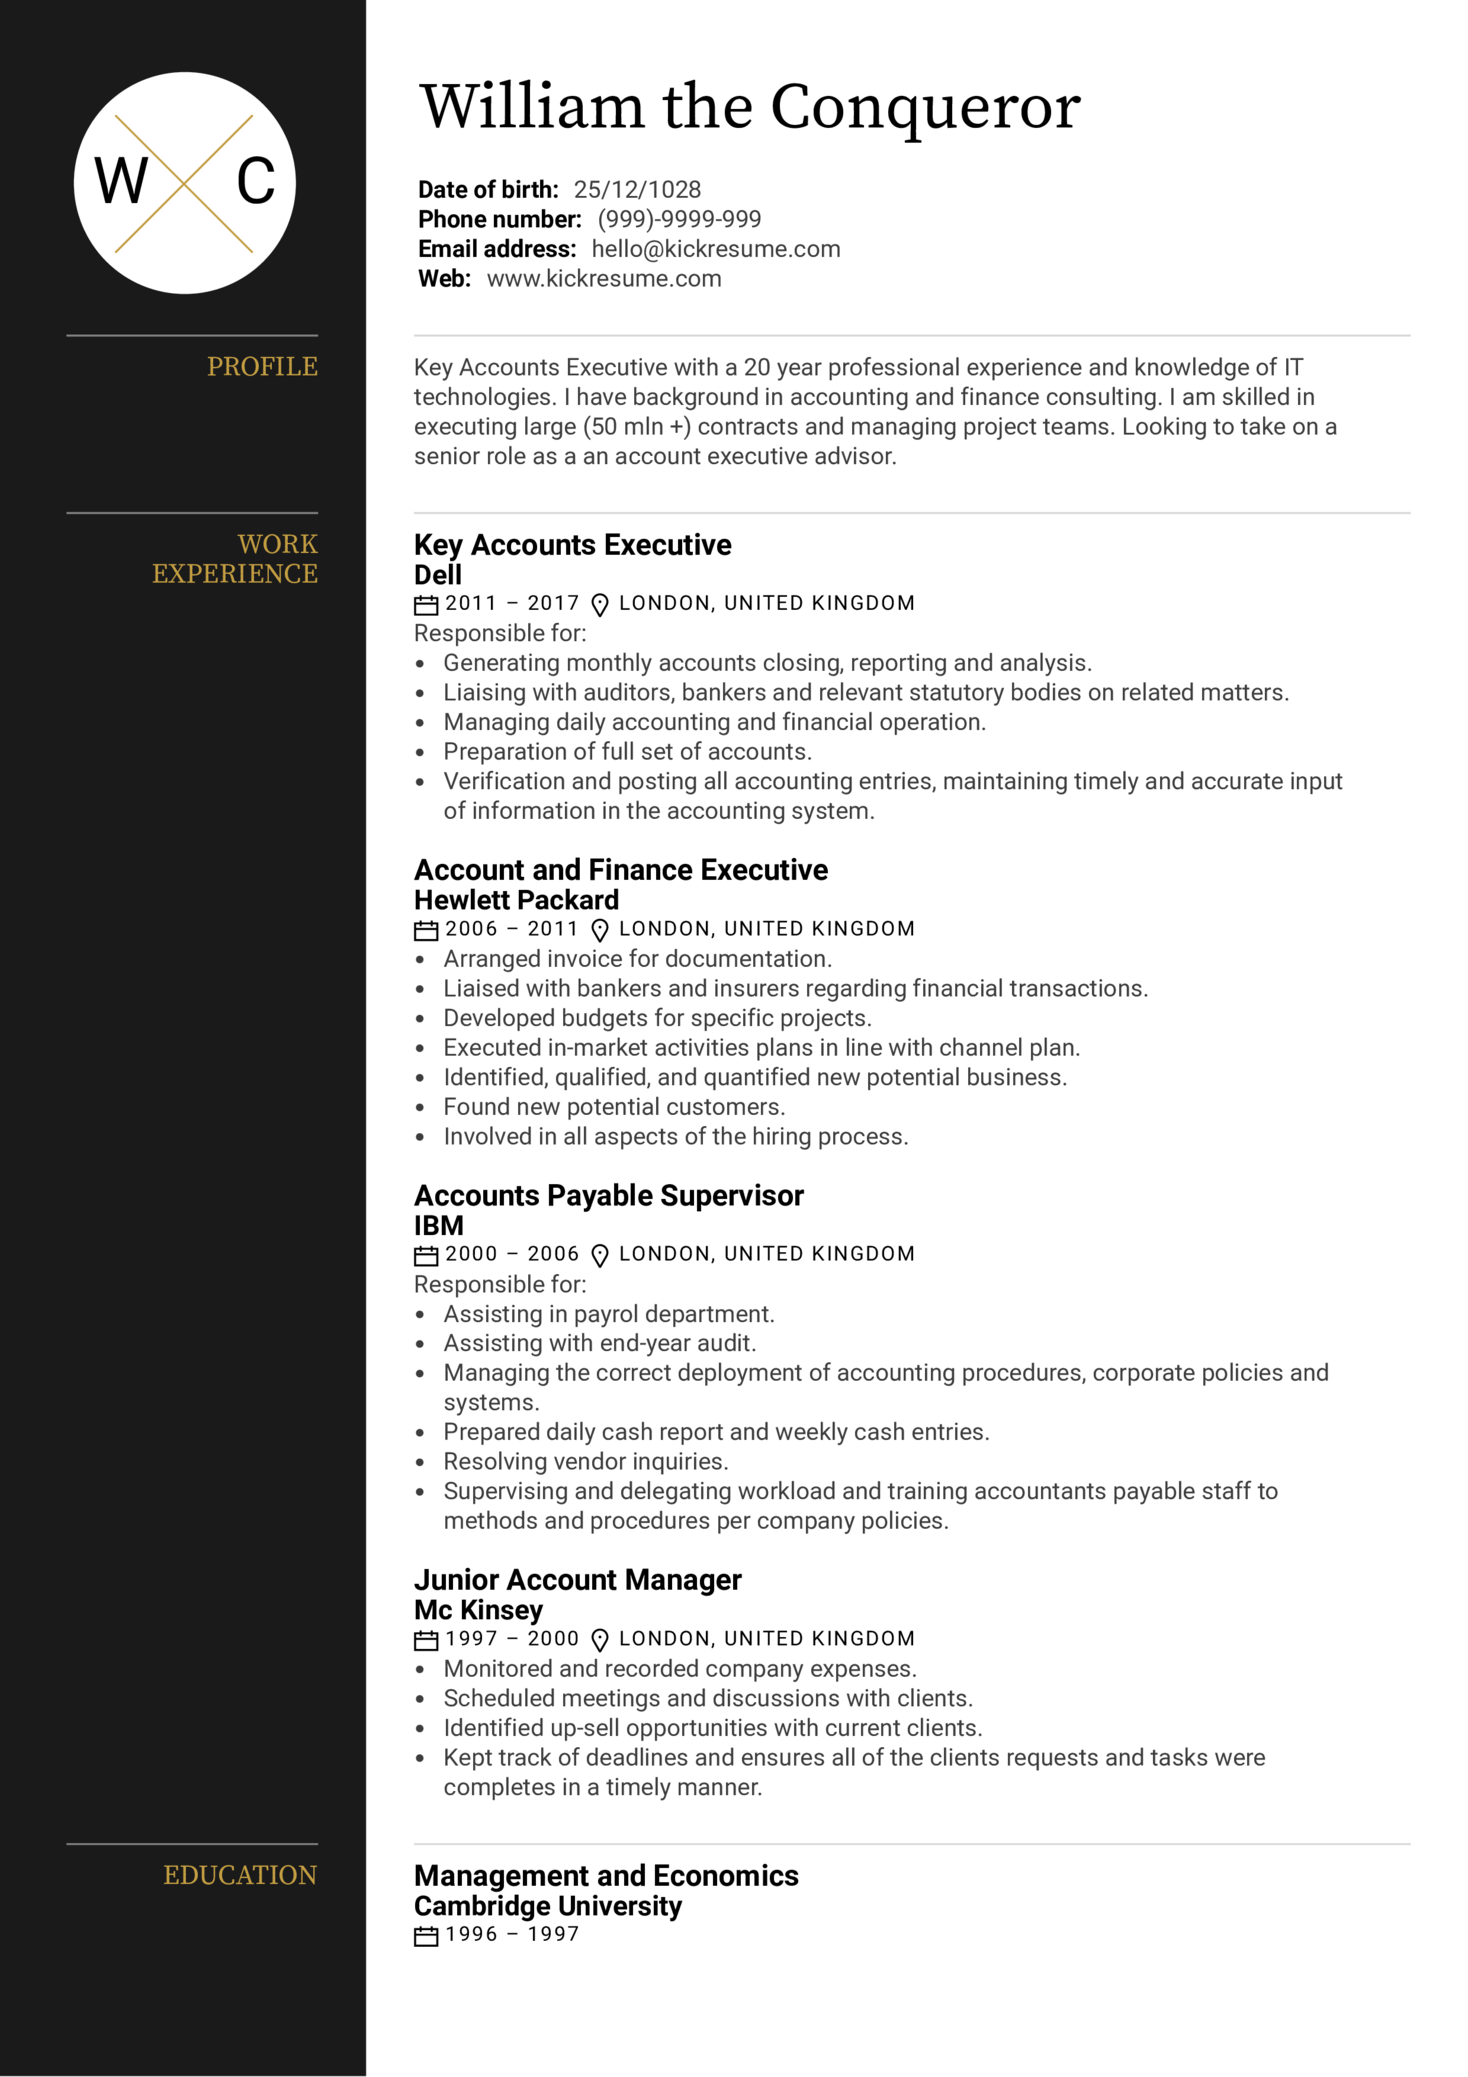 Executive Account Manager Resume Sample (Part 1)